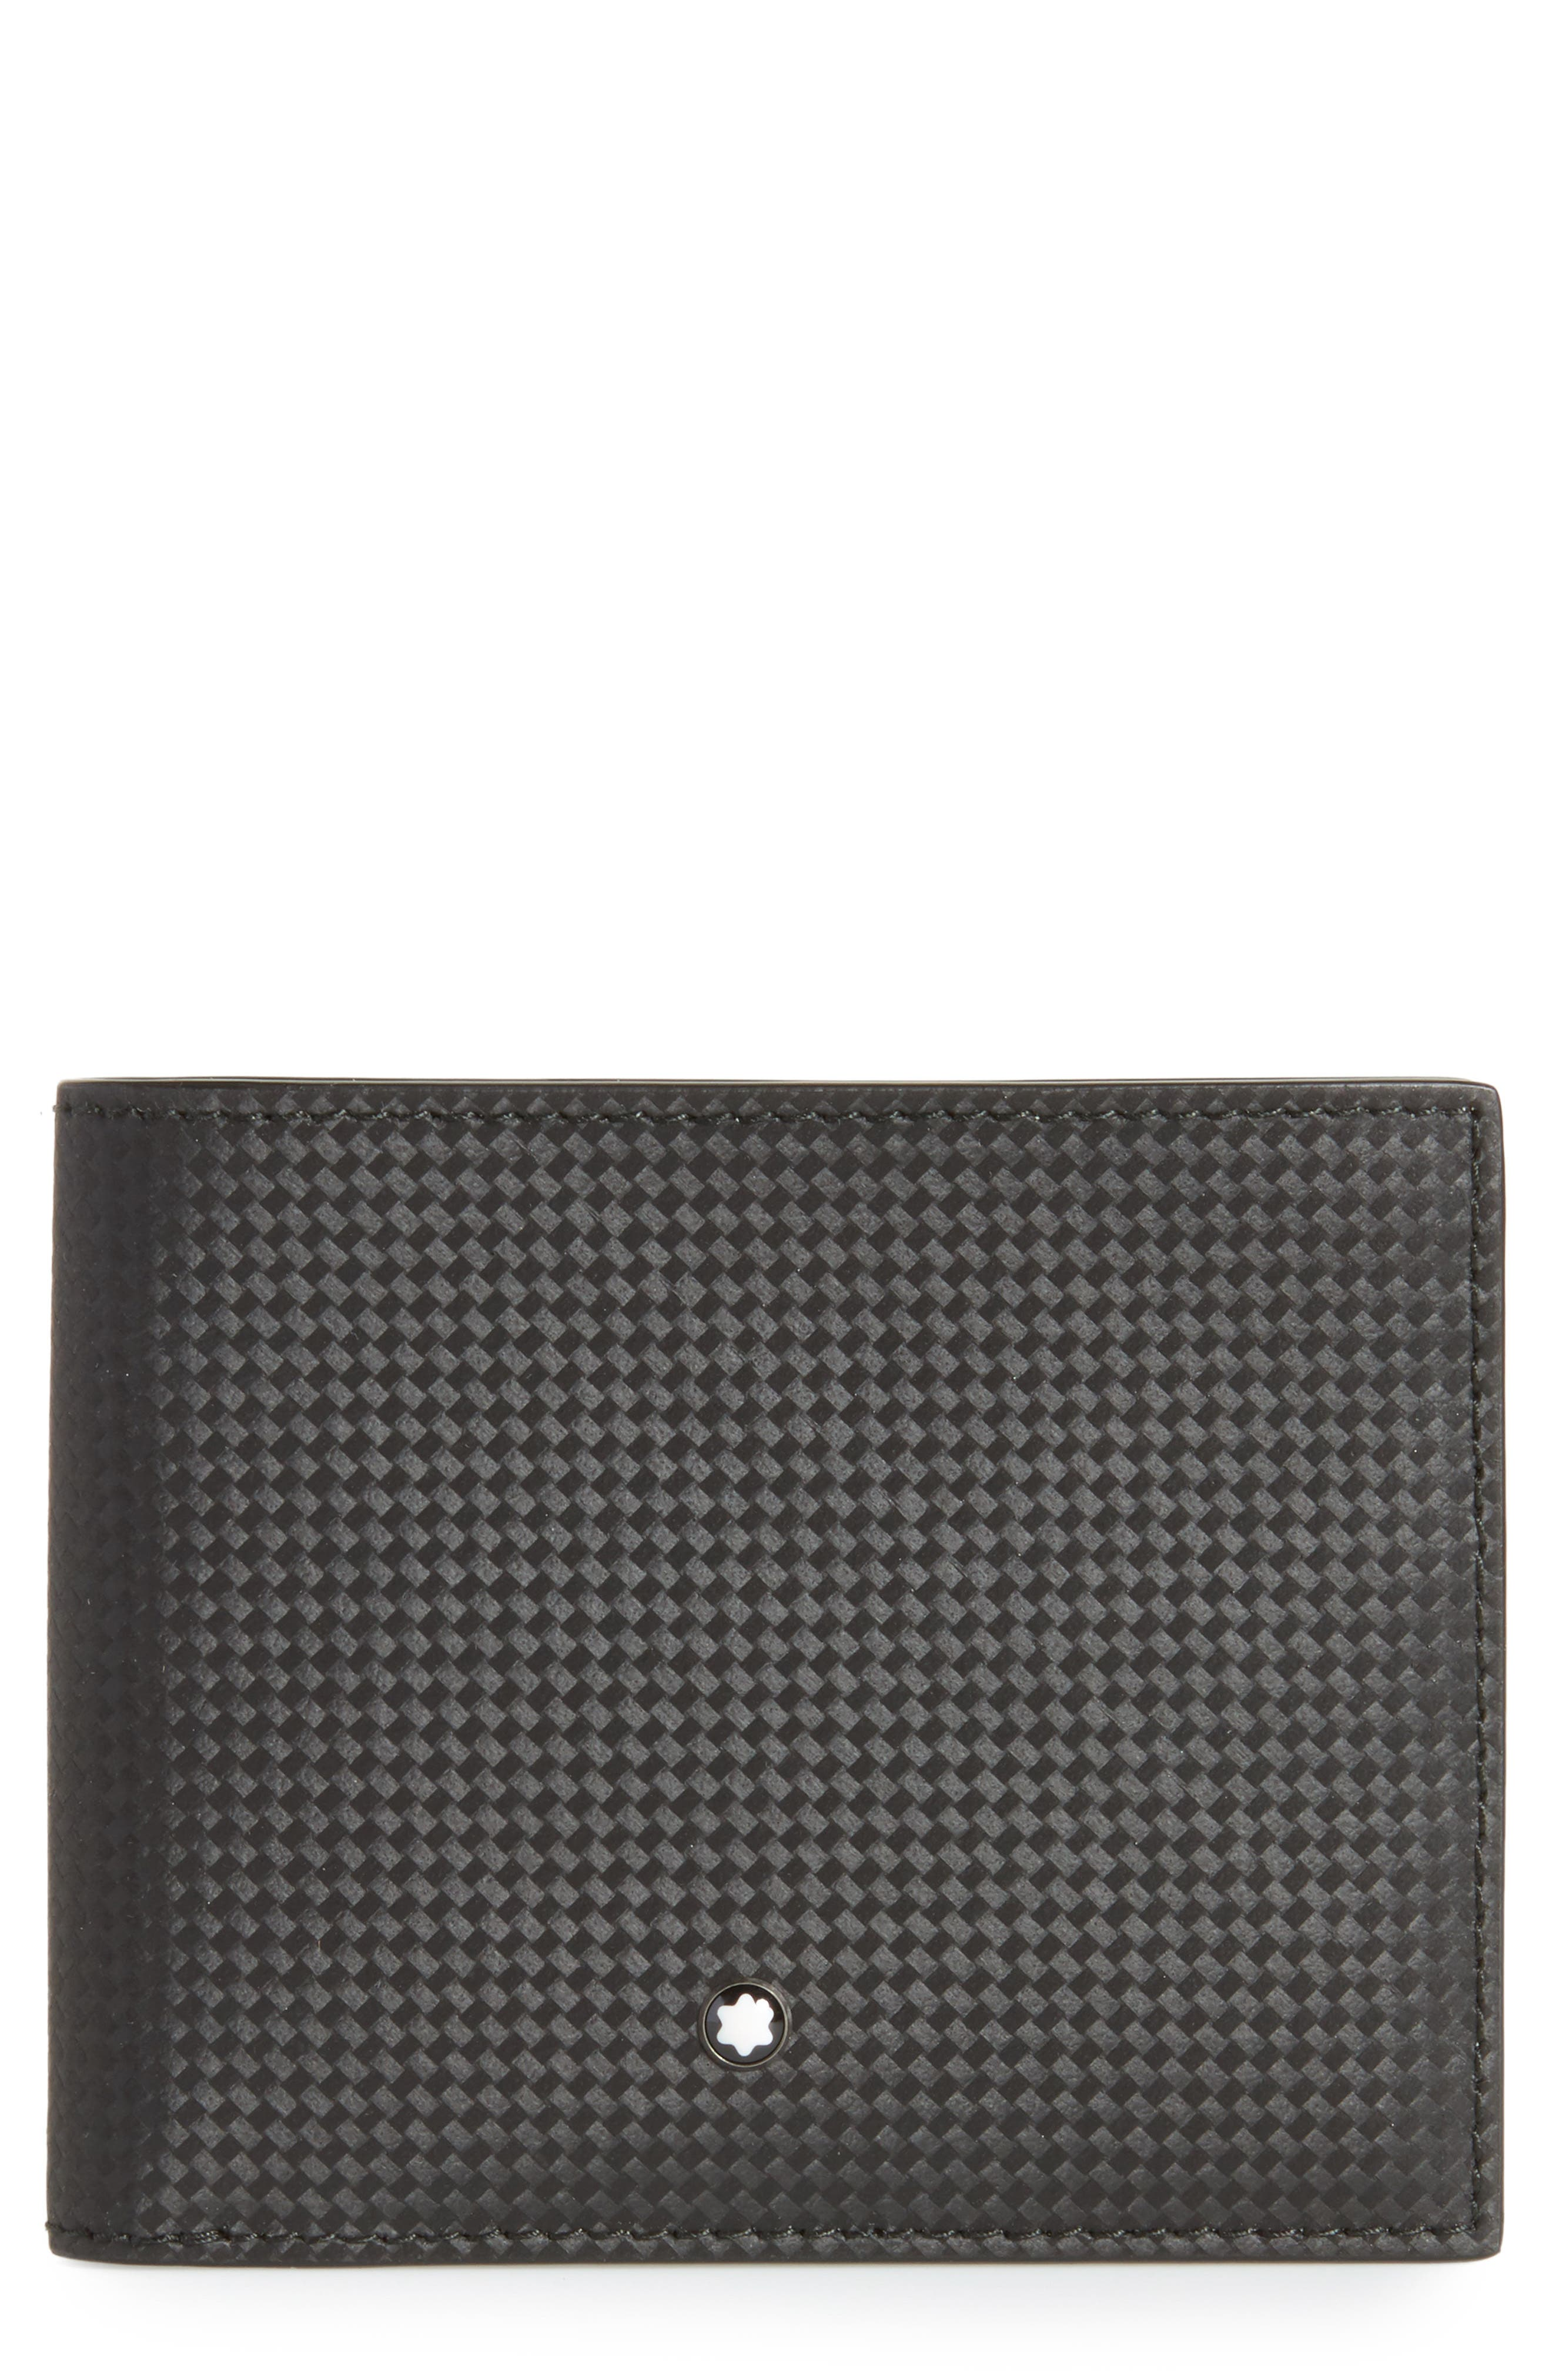 Extreme Leather Wallet,                             Main thumbnail 1, color,                             001